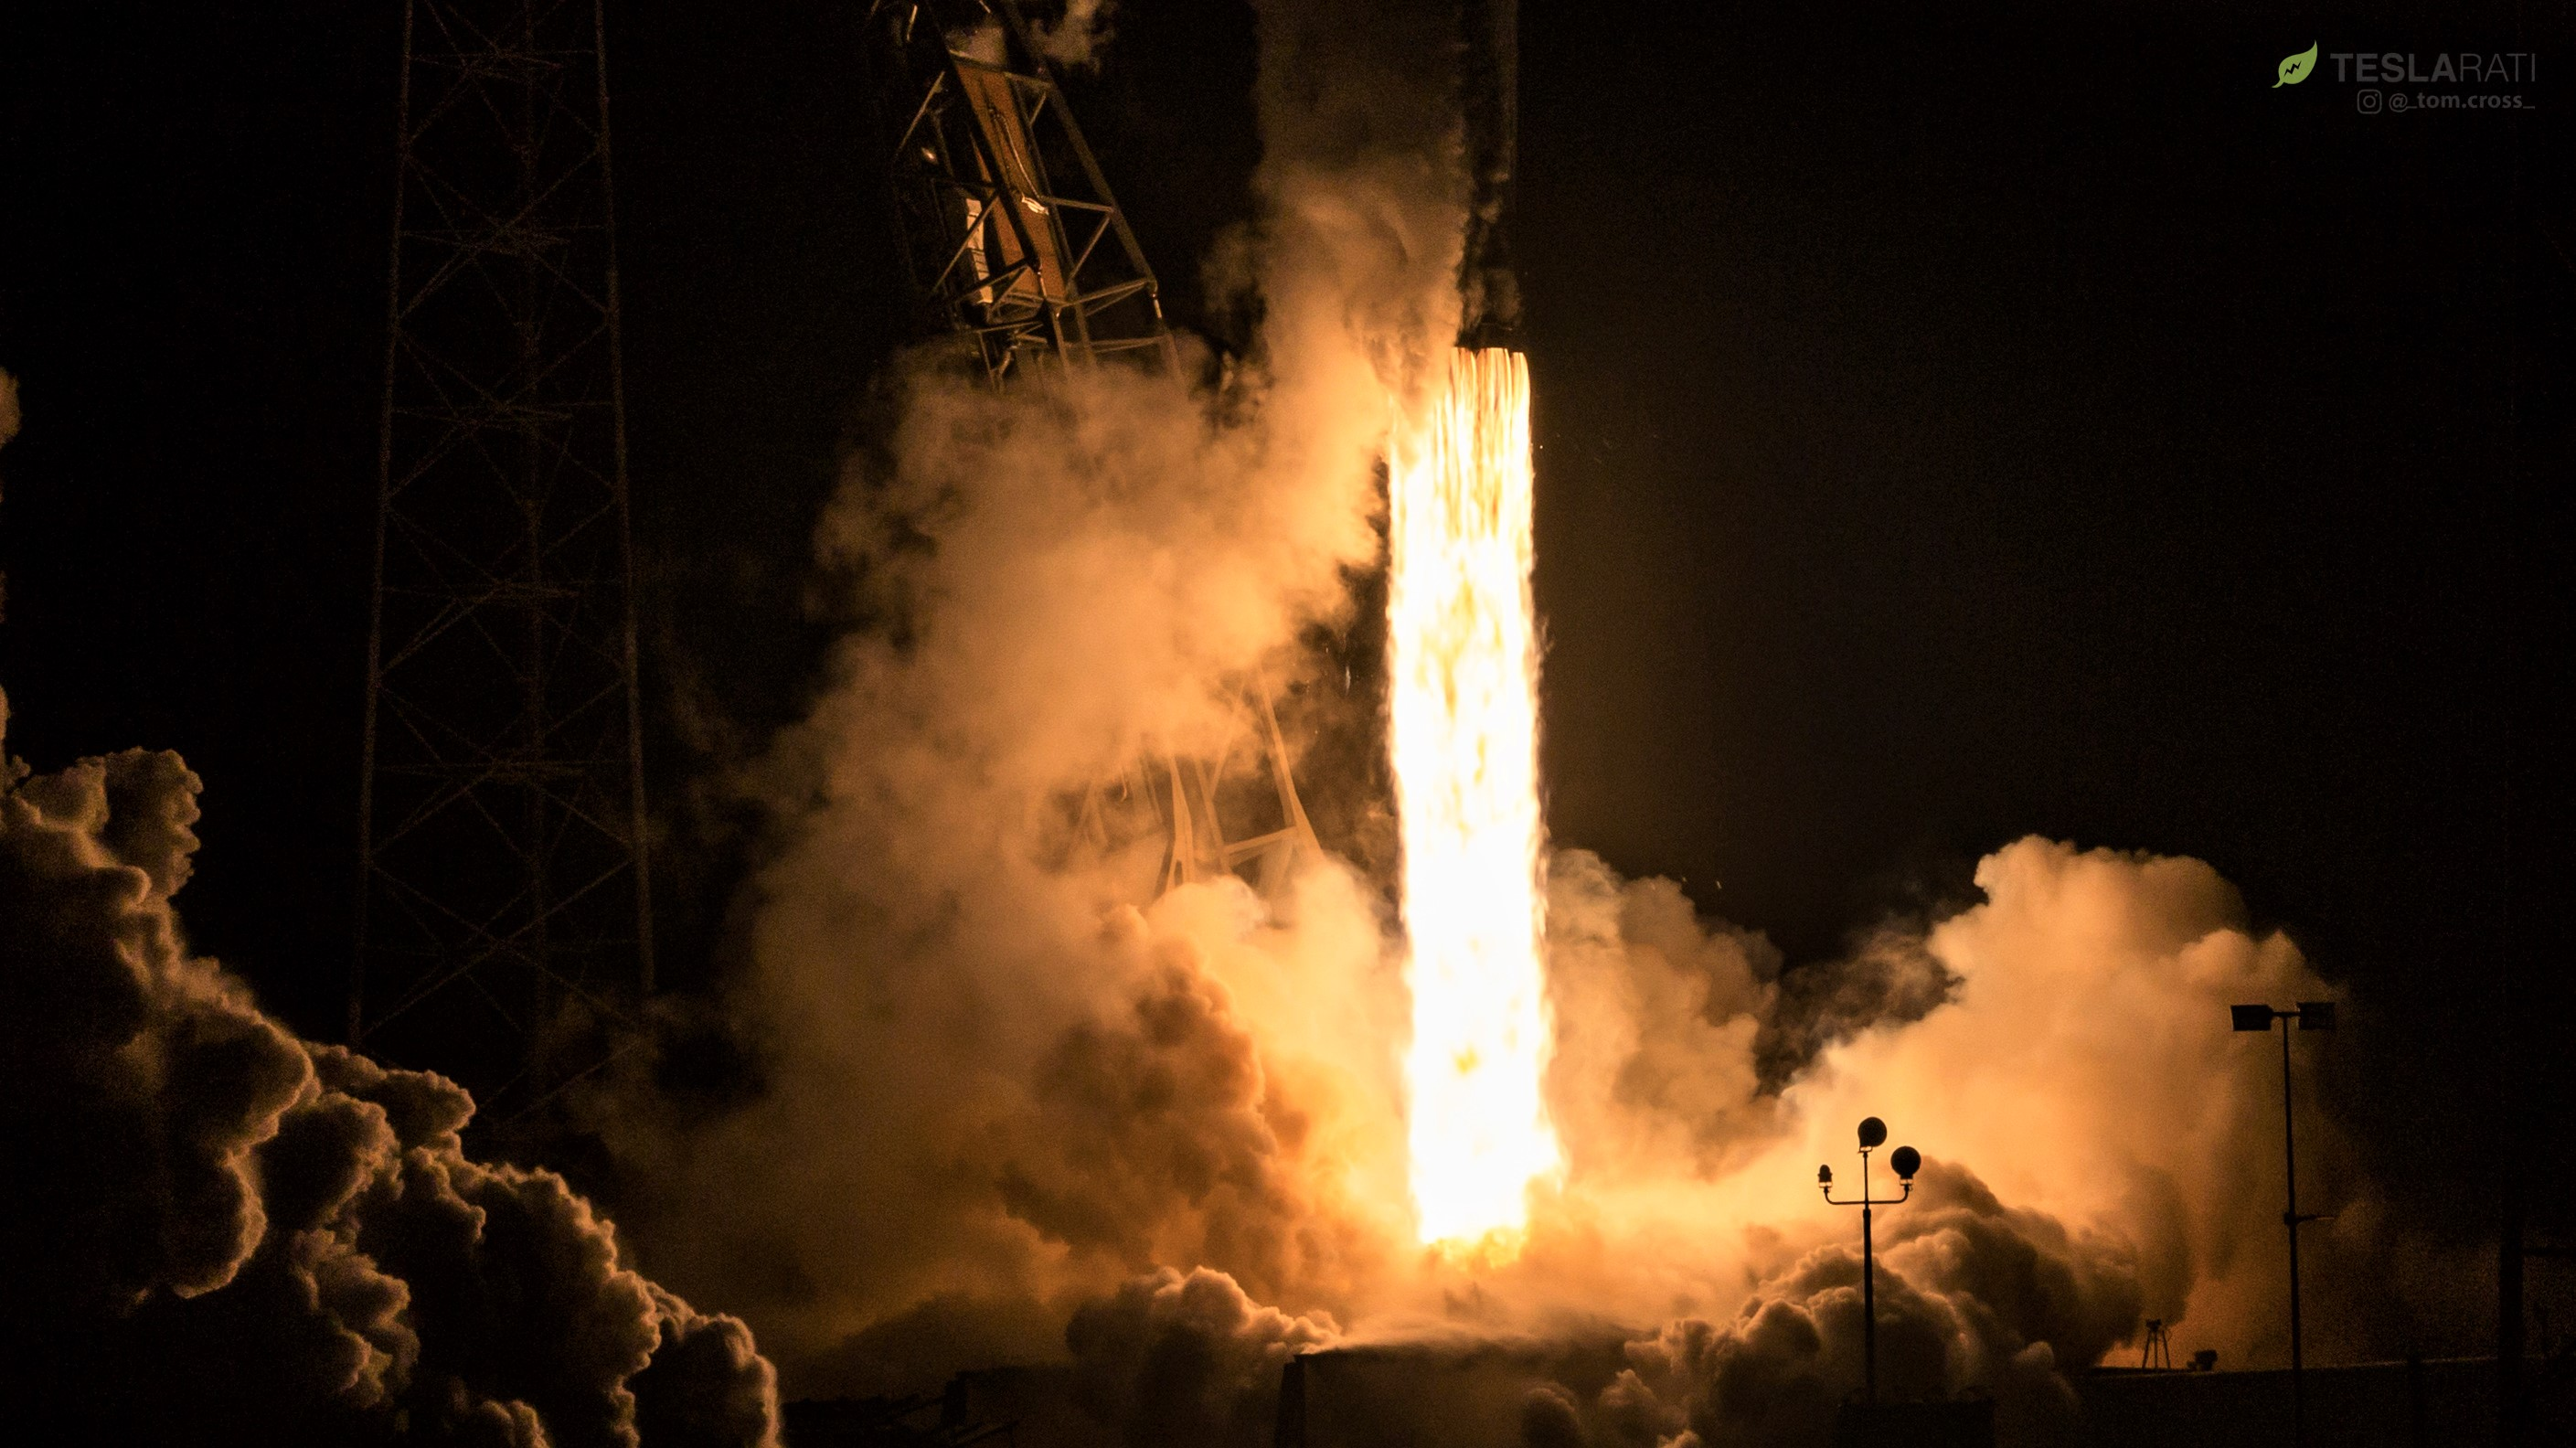 Falcon 9 B1049 Telstar 18V launch (Tom Cross) 4